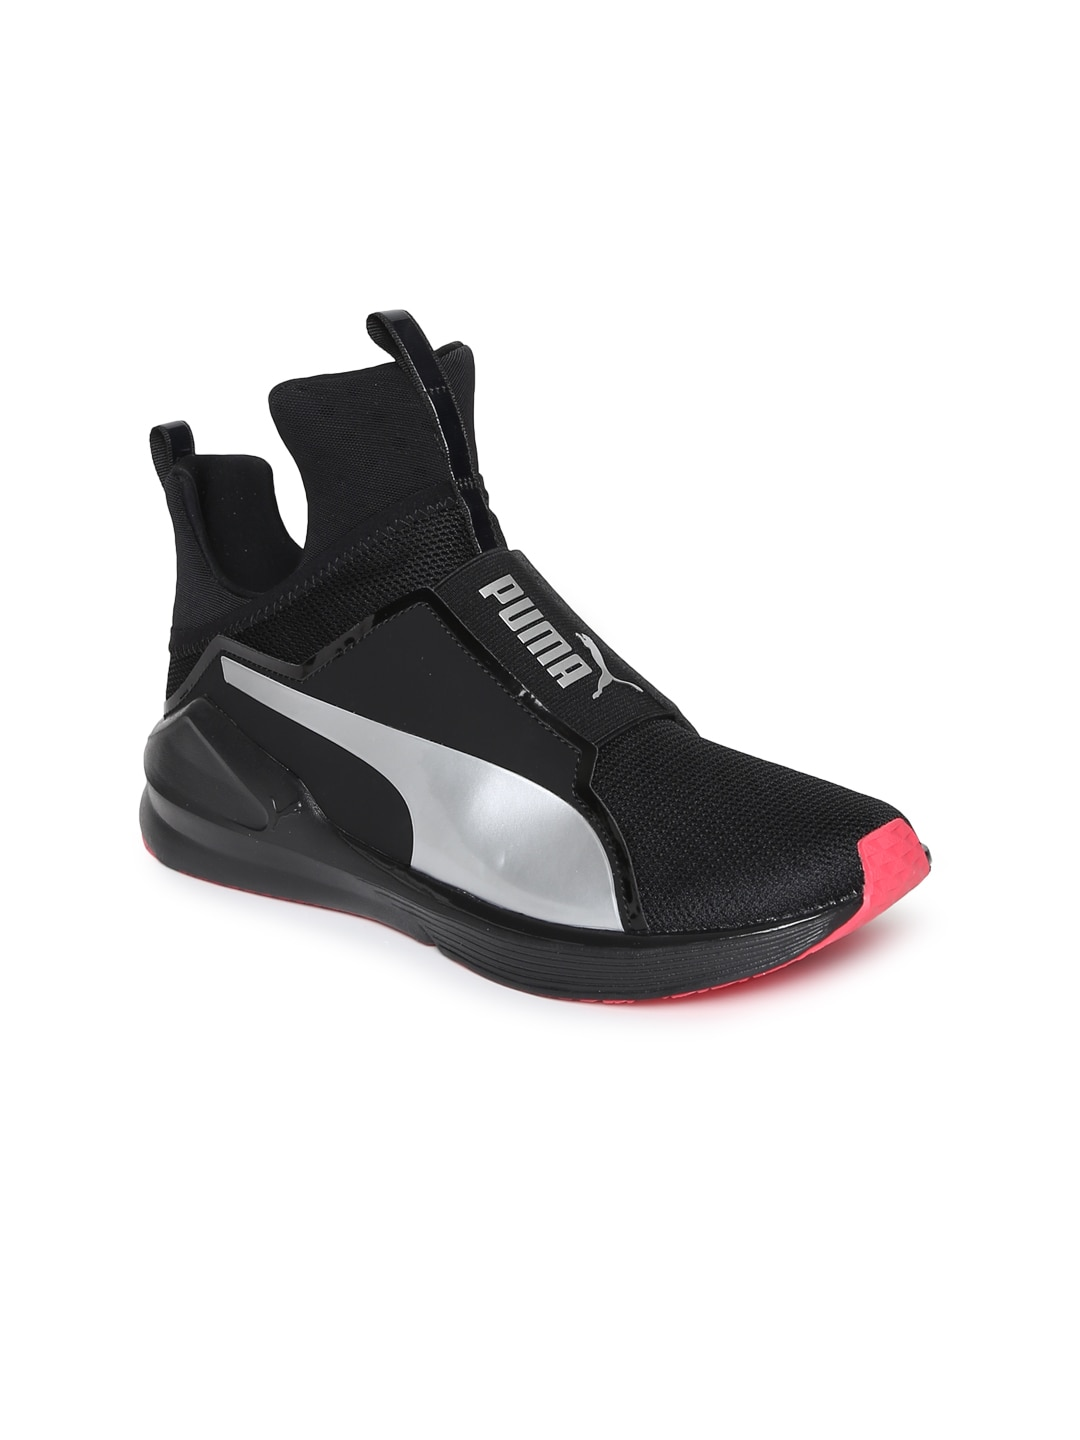 Puma® - Buy Orignal Puma products in India  c38aff5e8